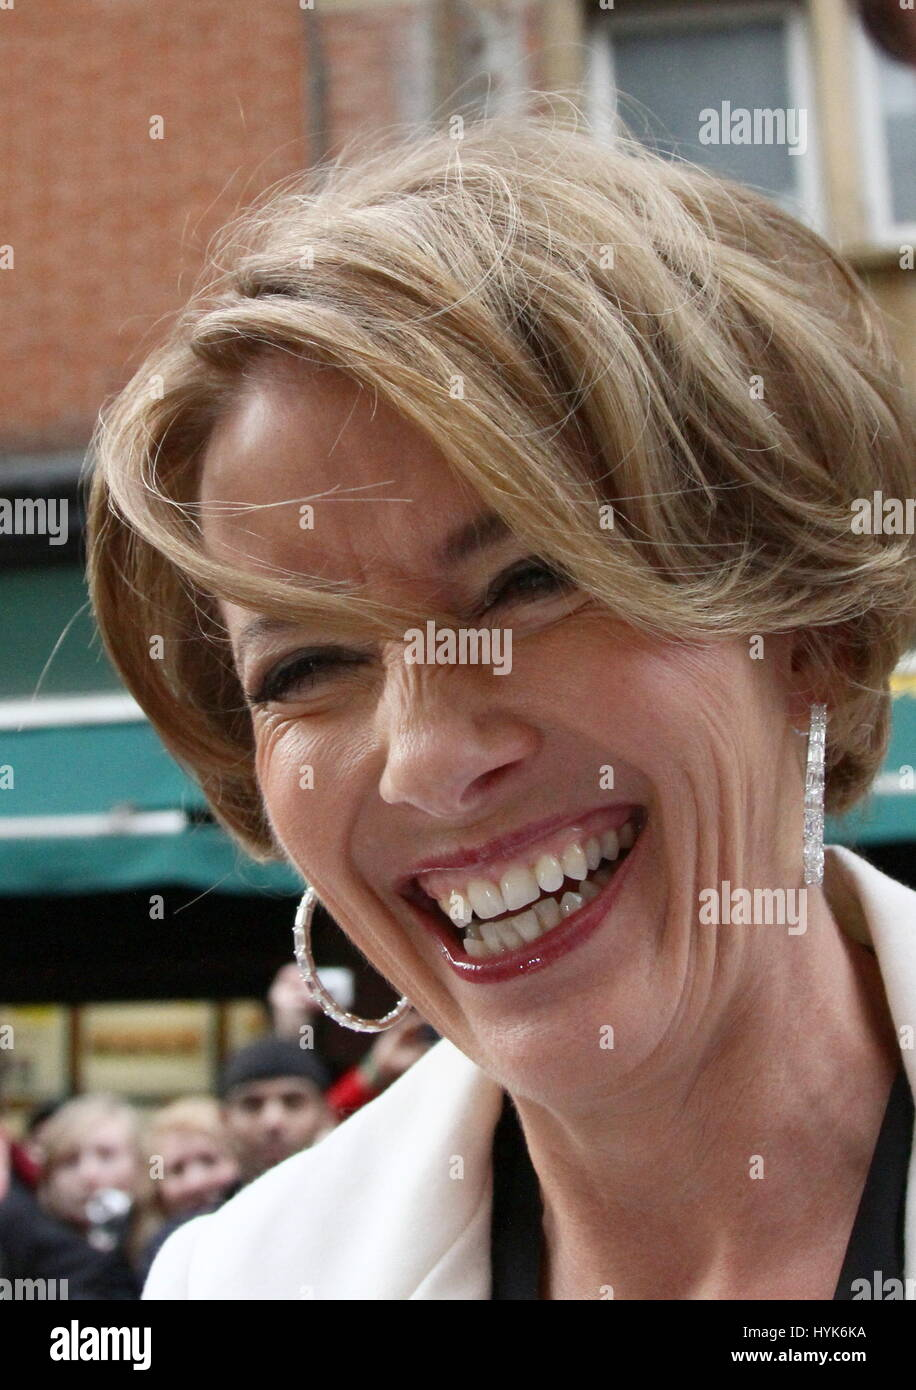 Actor EMMA THOMPSON smiling in Leicester Square London 2012 May 16th. - Stock Image